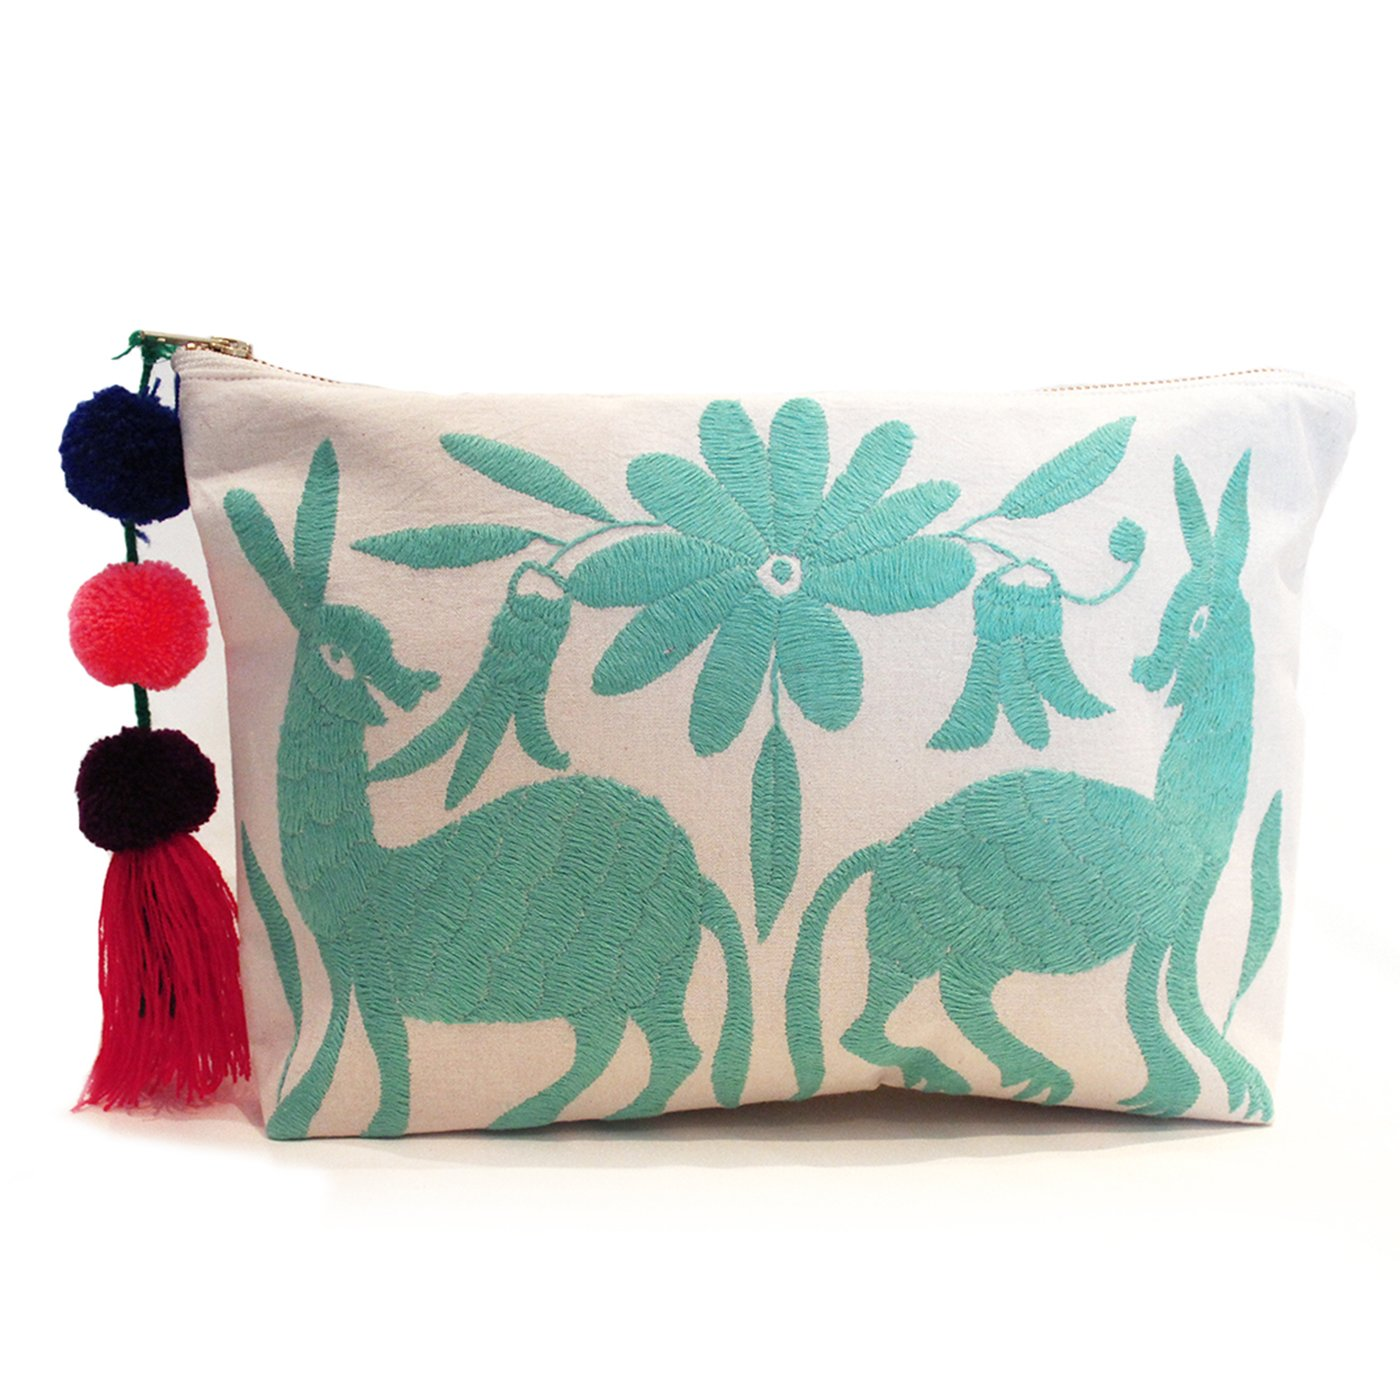 Otomi Hand Embroidered Clutch - Mint